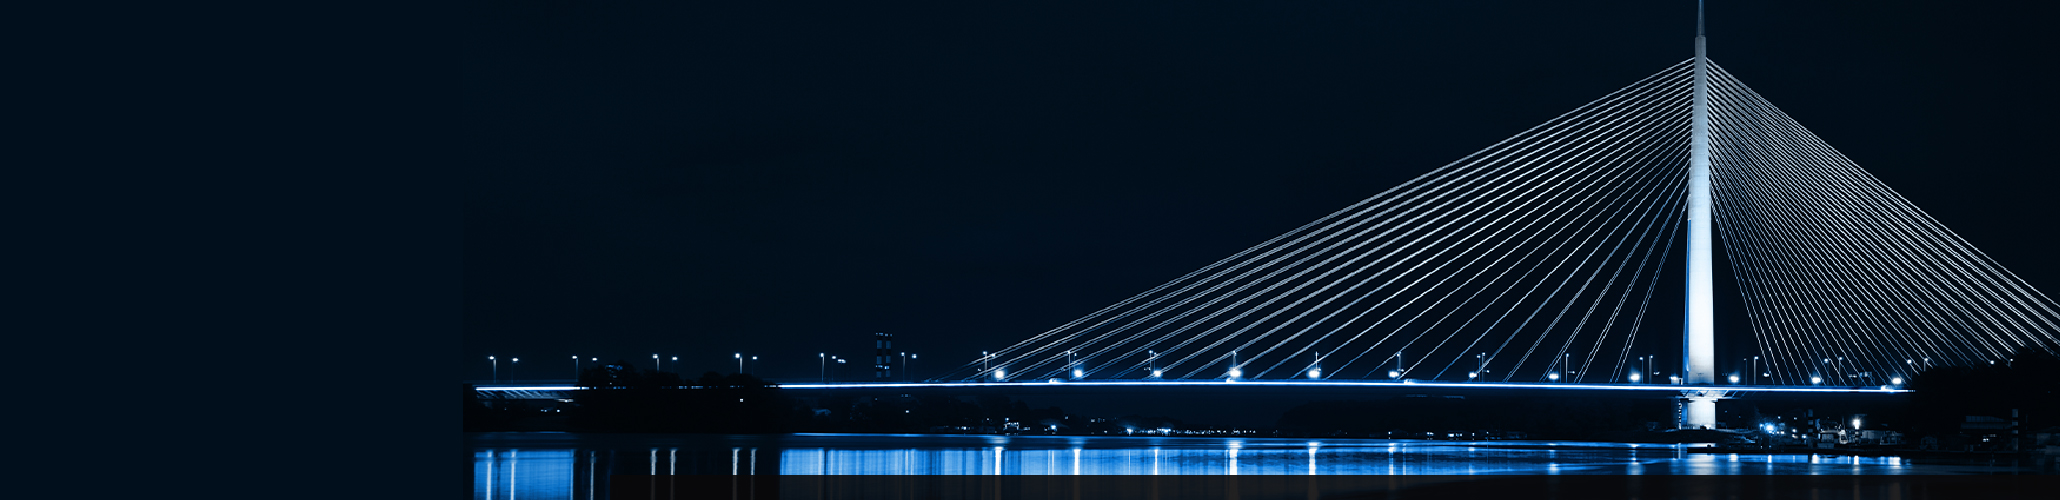 bridge header